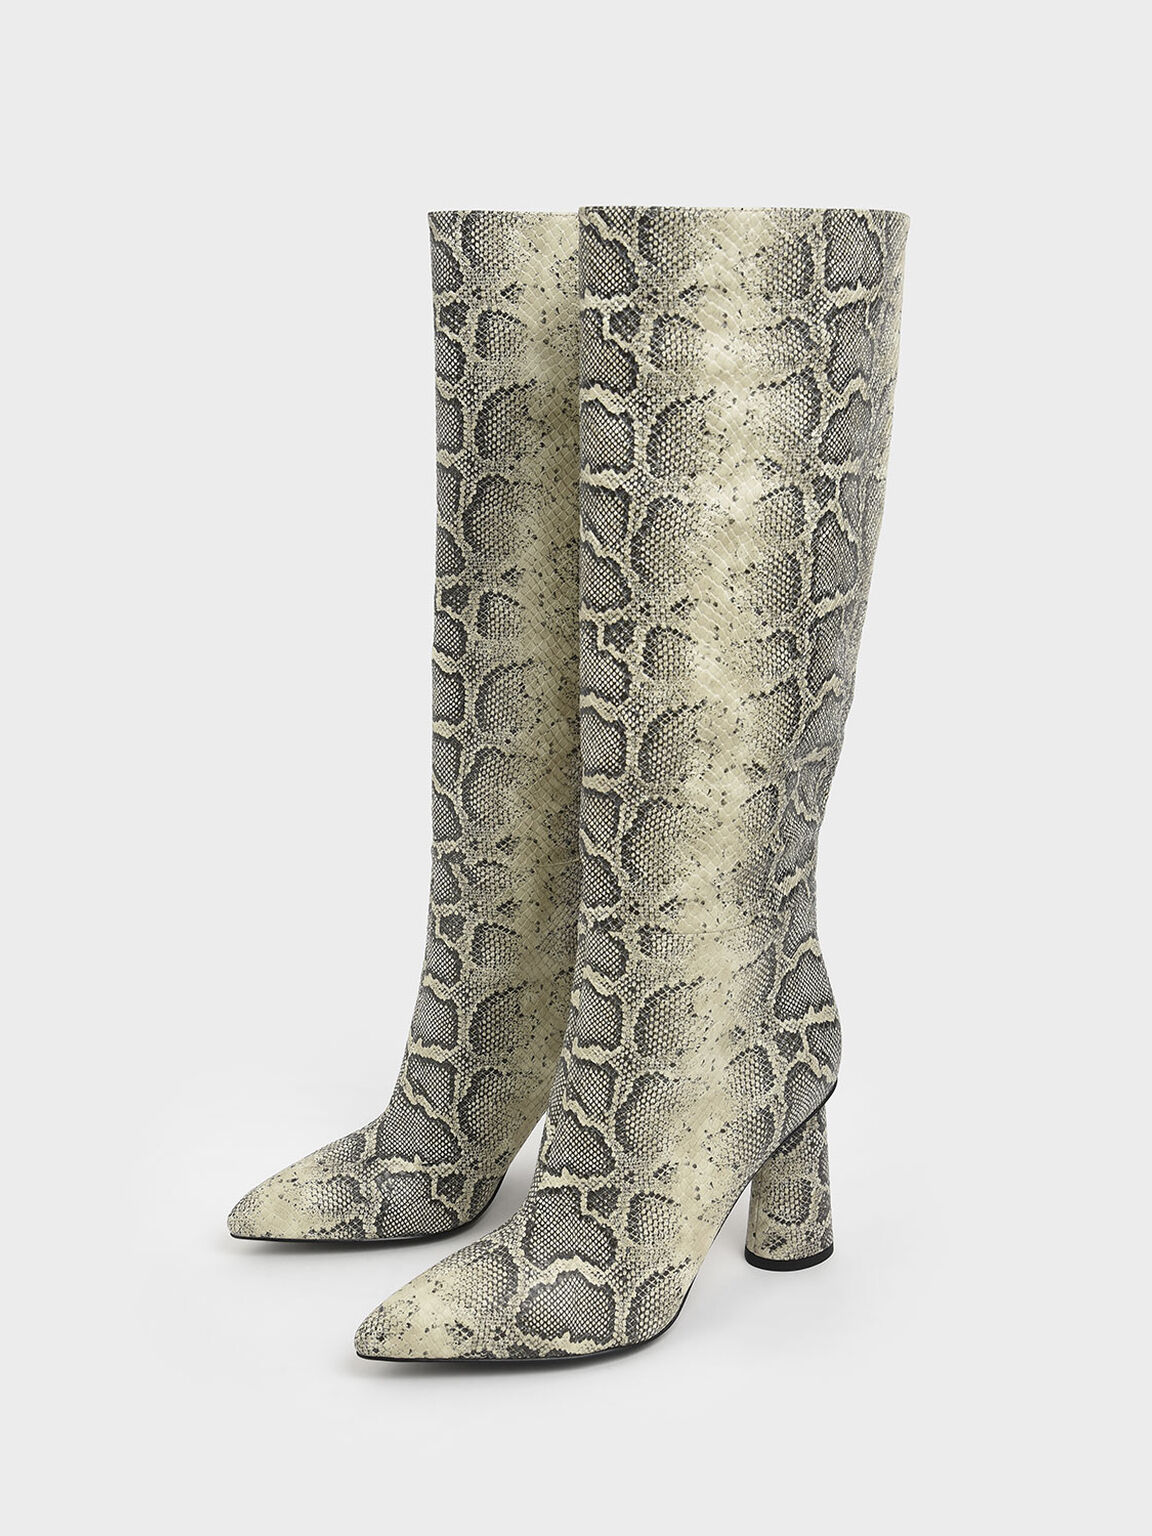 Snake Print Knee High Heeled Boots, Grey, hi-res